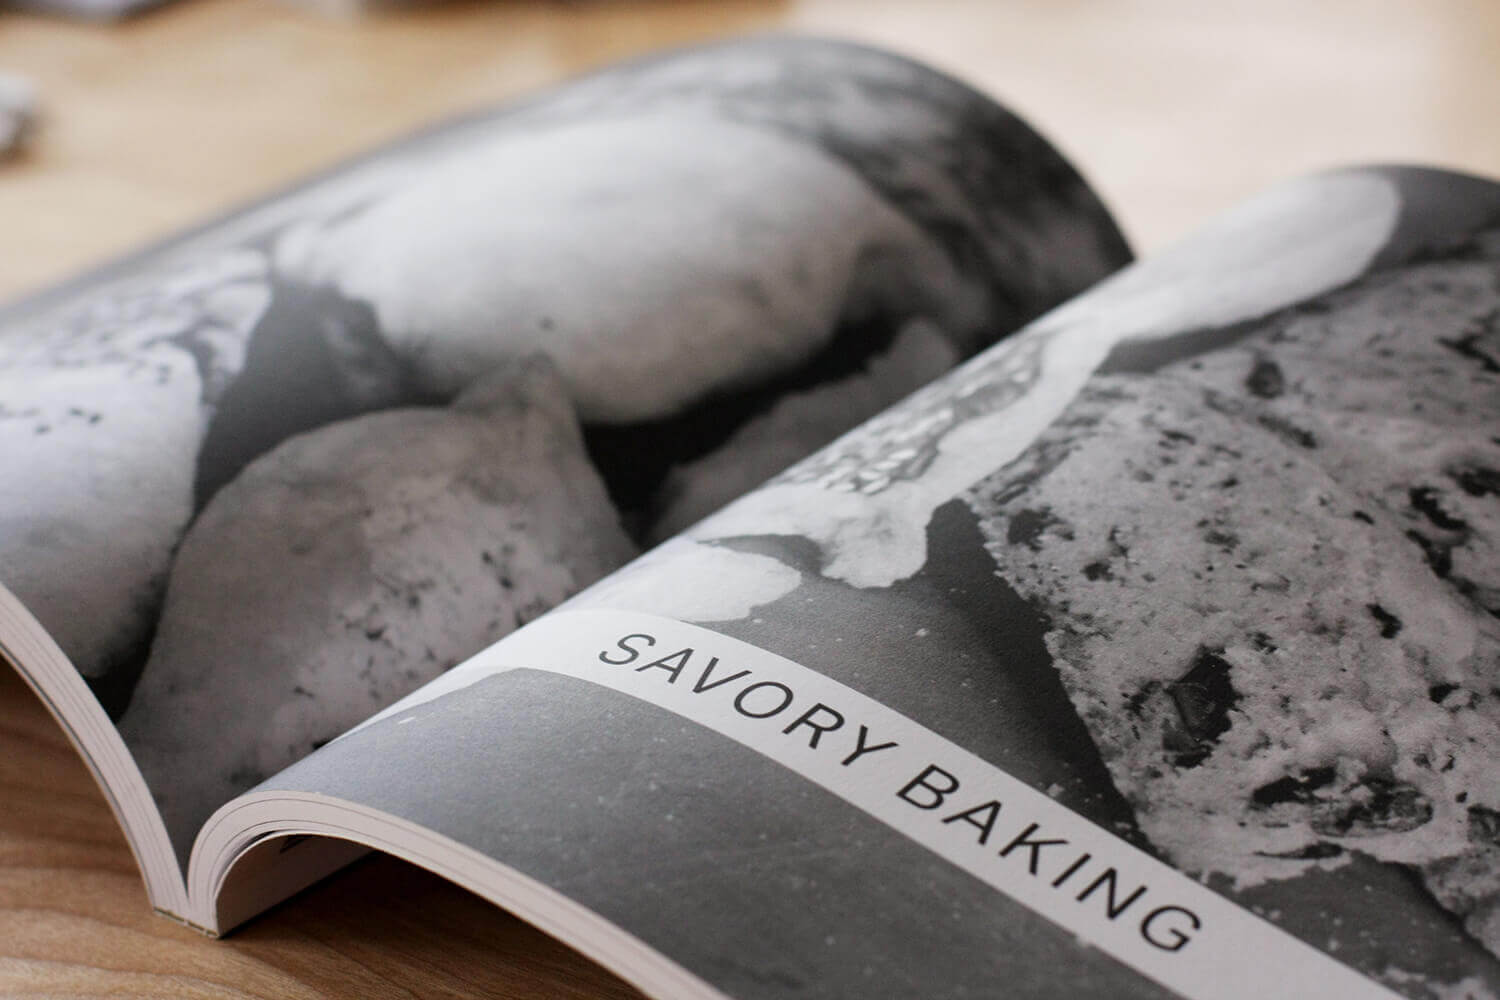 Sanaa's cookbook design: Chapter opening